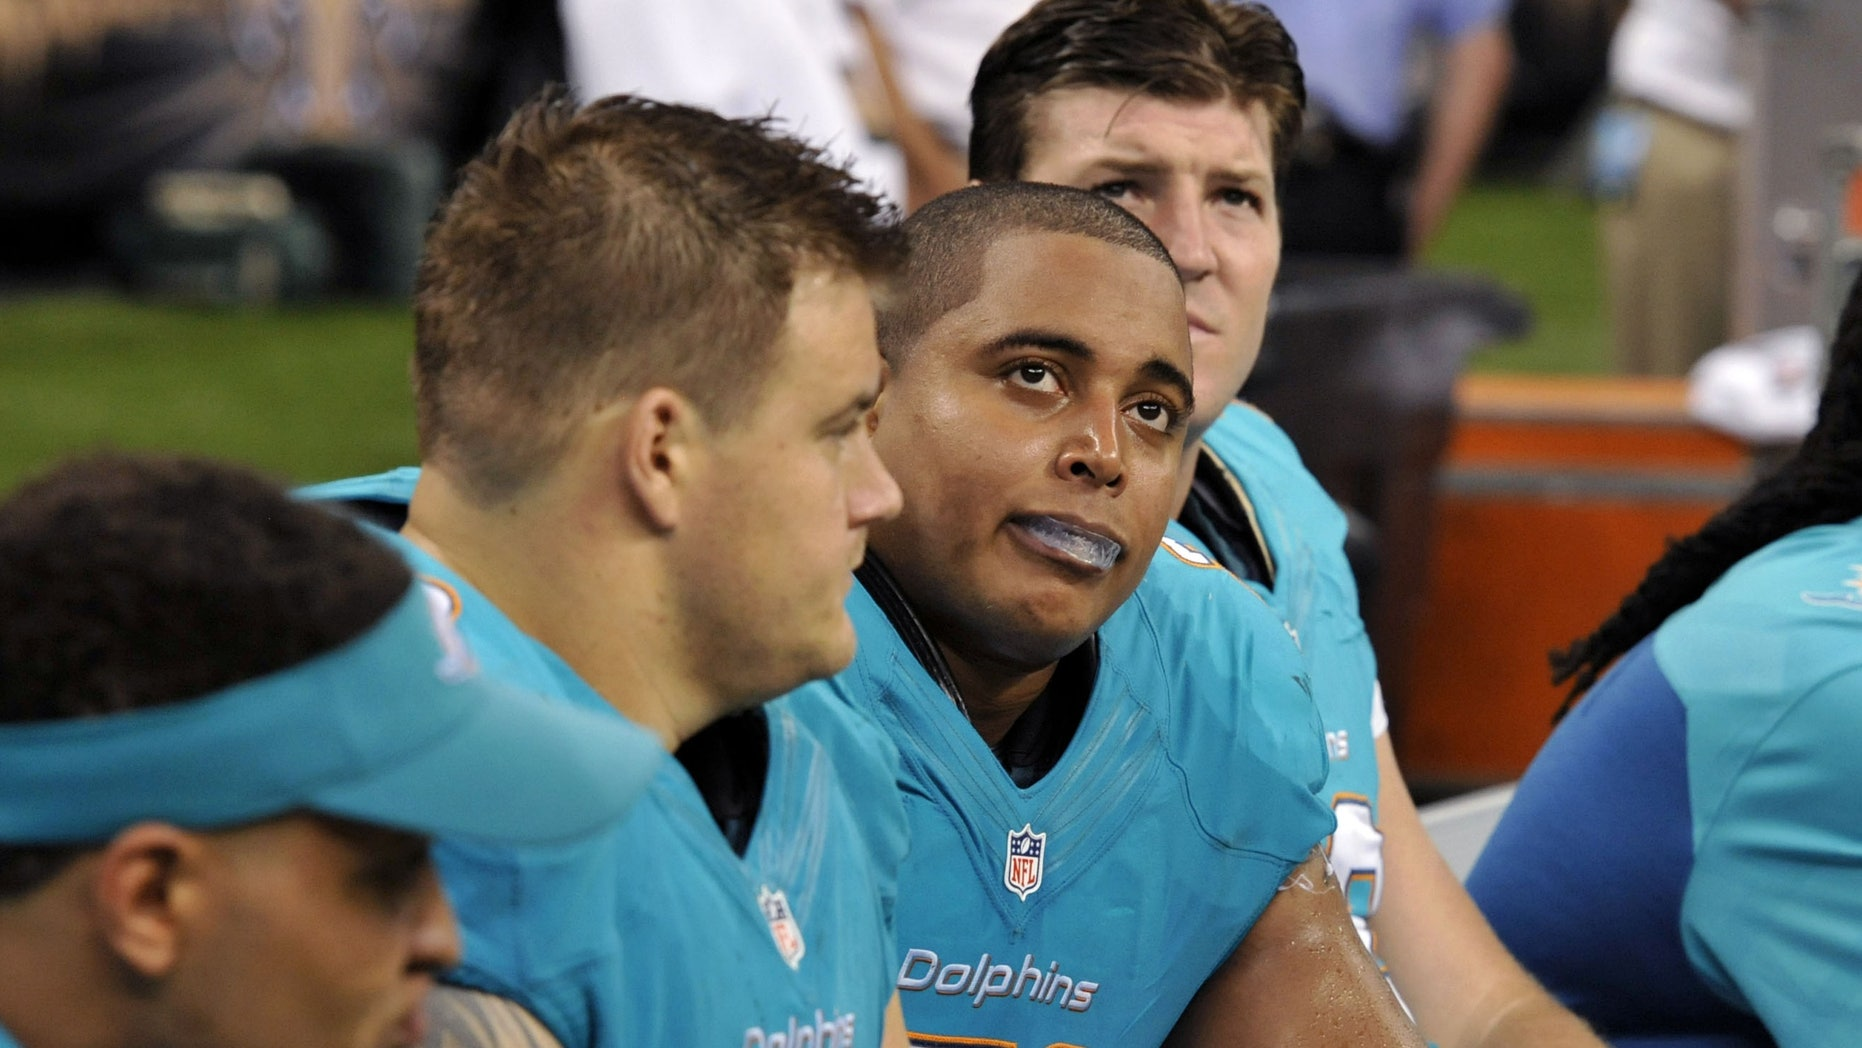 FILE - In this Sept. 30, 2013 file photo, Miami Dolphins guard Richie Incognito (68), center left, and  and tackle Jonathan Martin (71), center right, sit on the bench in the second half of an NFL football game against the New Orleans Saints in New Orleans. About halfway between the start of exhibition games and the Super Bowl, there have been plenty of unwanted story lines. Bullying in the locker room, coaches collapsing, serious injuries to marquee players, the D.C. Council's call on Washington's pro football team to change its name _ examples from the past week alone. (AP Photo/Bill Feig, File)